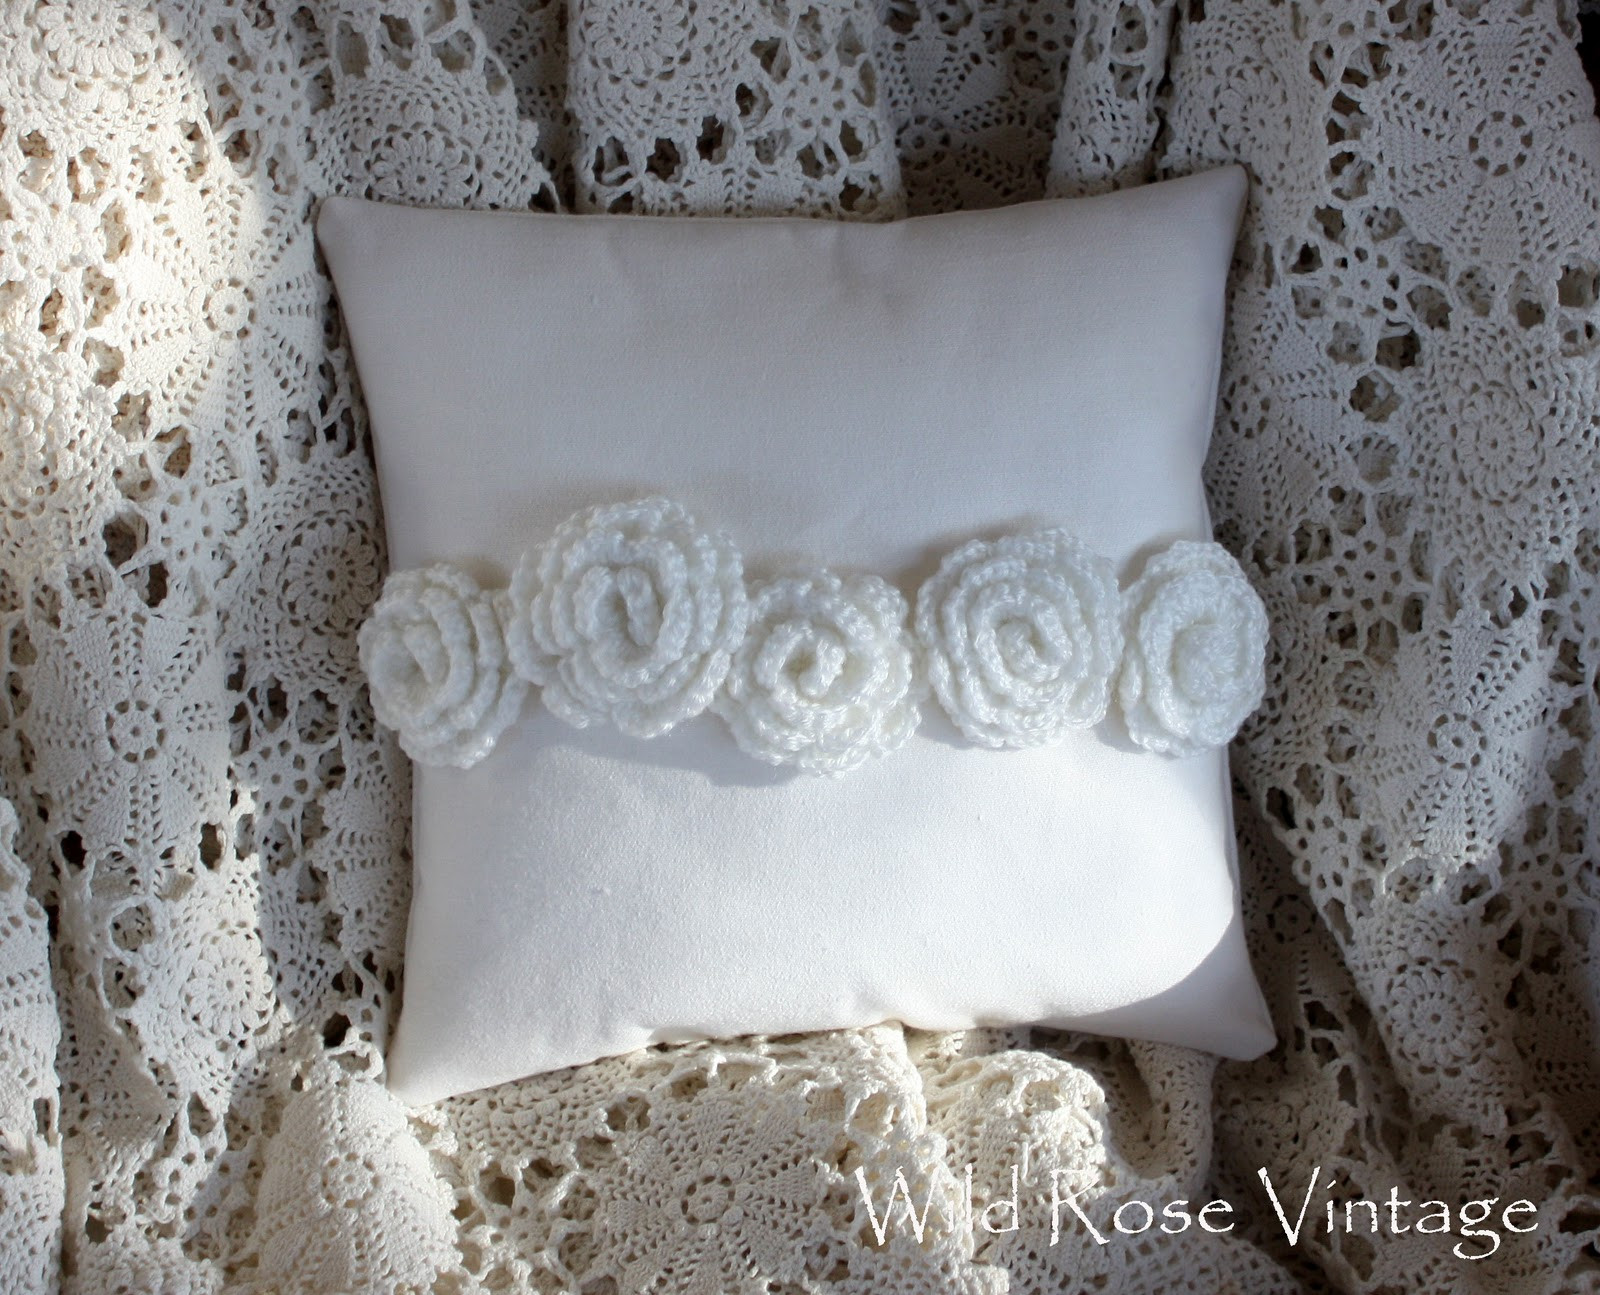 Crochet Pillow Luxury Wild Rose Vintage Crochet Roses Pillow Of Superb 50 Images Crochet Pillow